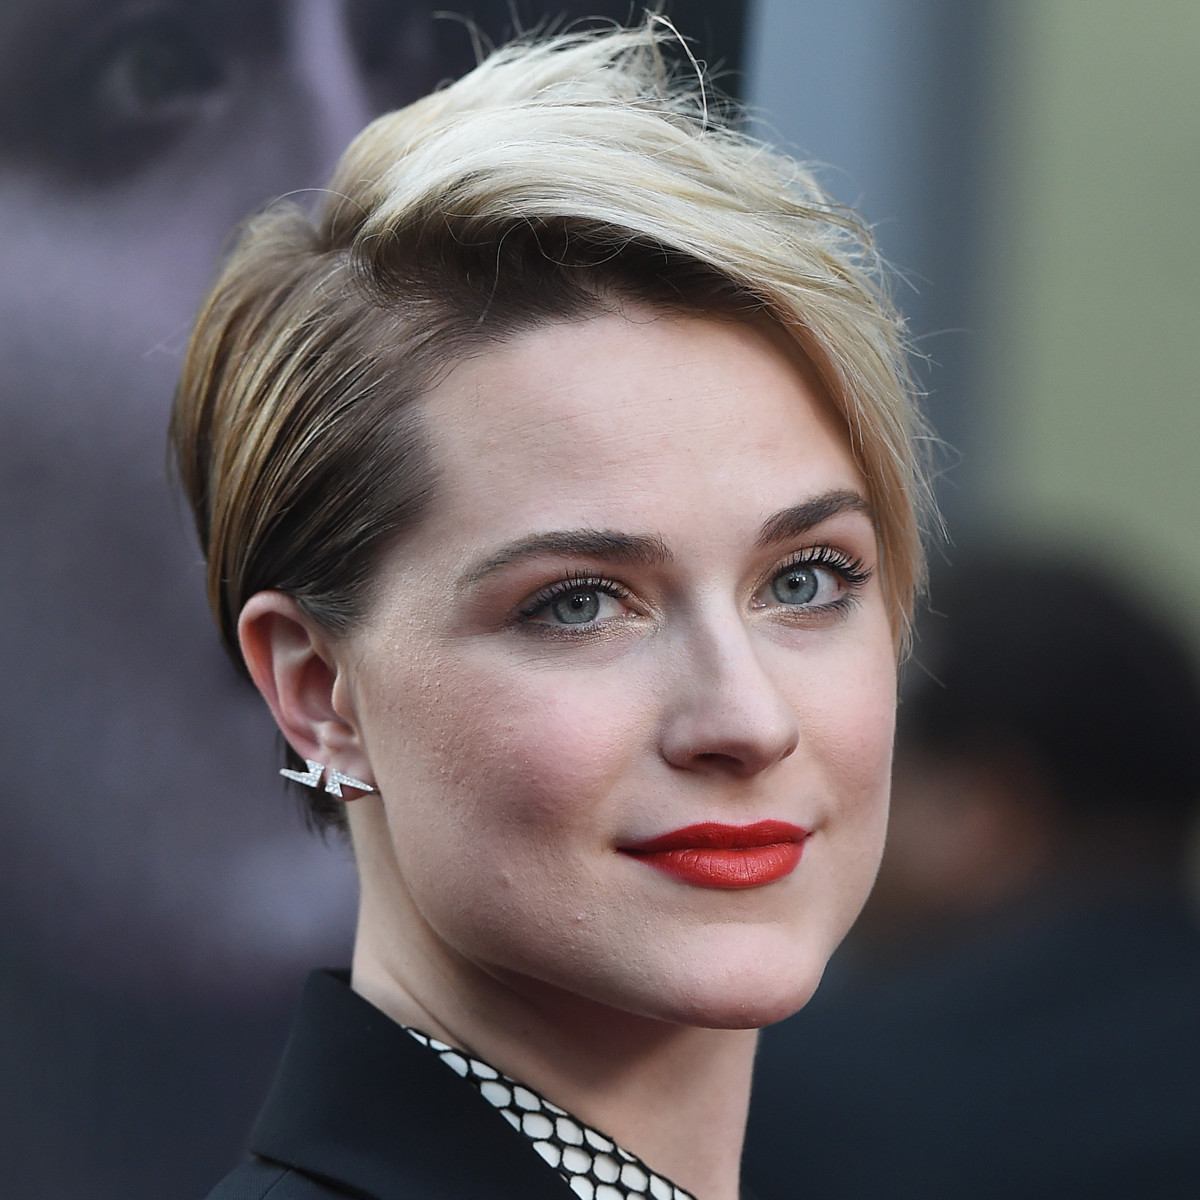 Evan Rachel Wood Biography - Biography Evan Rachel Wood